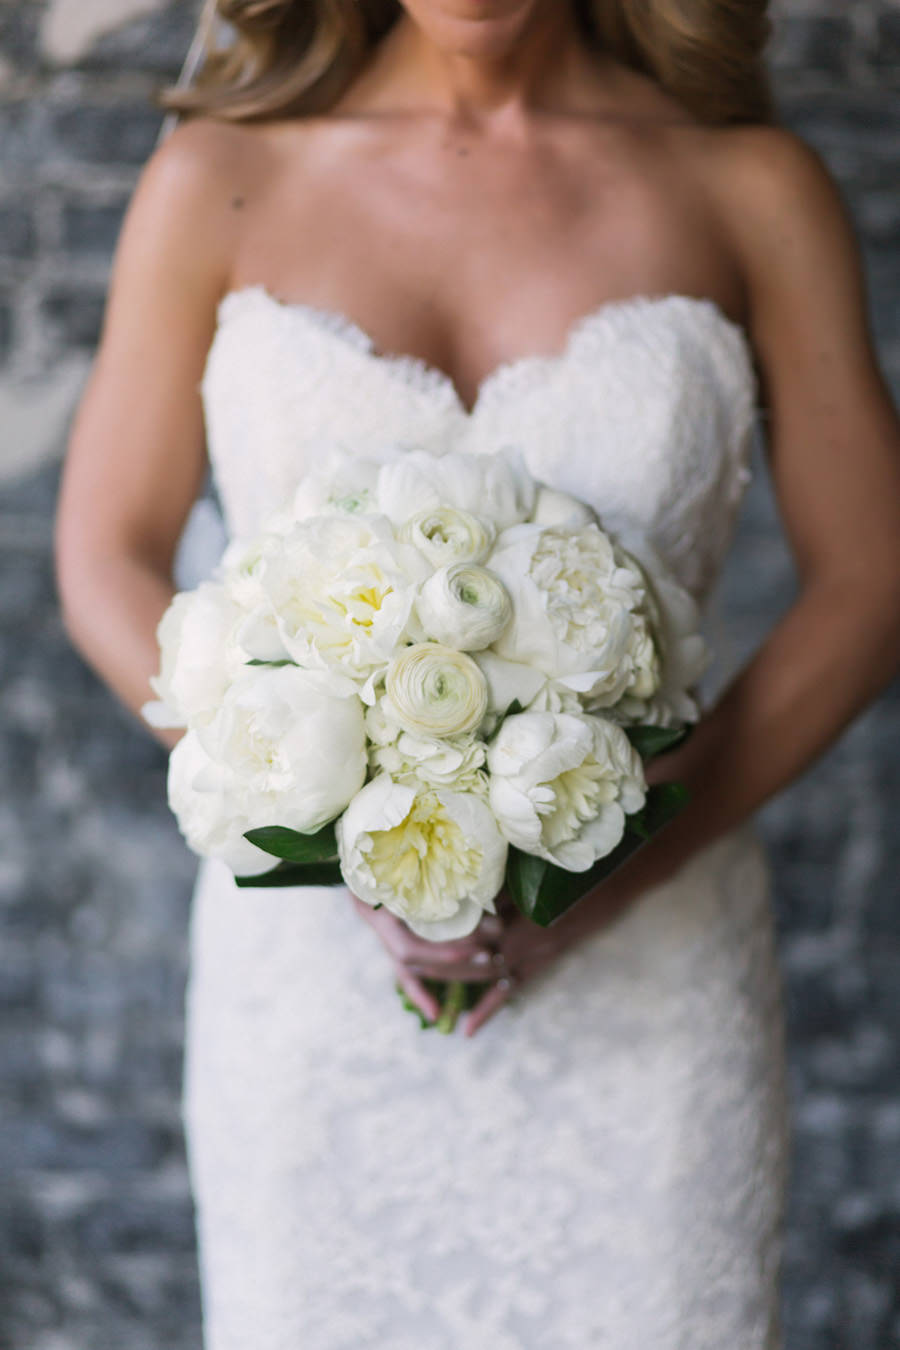 Bridal Wedding Portrait in Ivory, Lace Strapless Dress and White Floral Peony Wedding Bouquet of Flowers